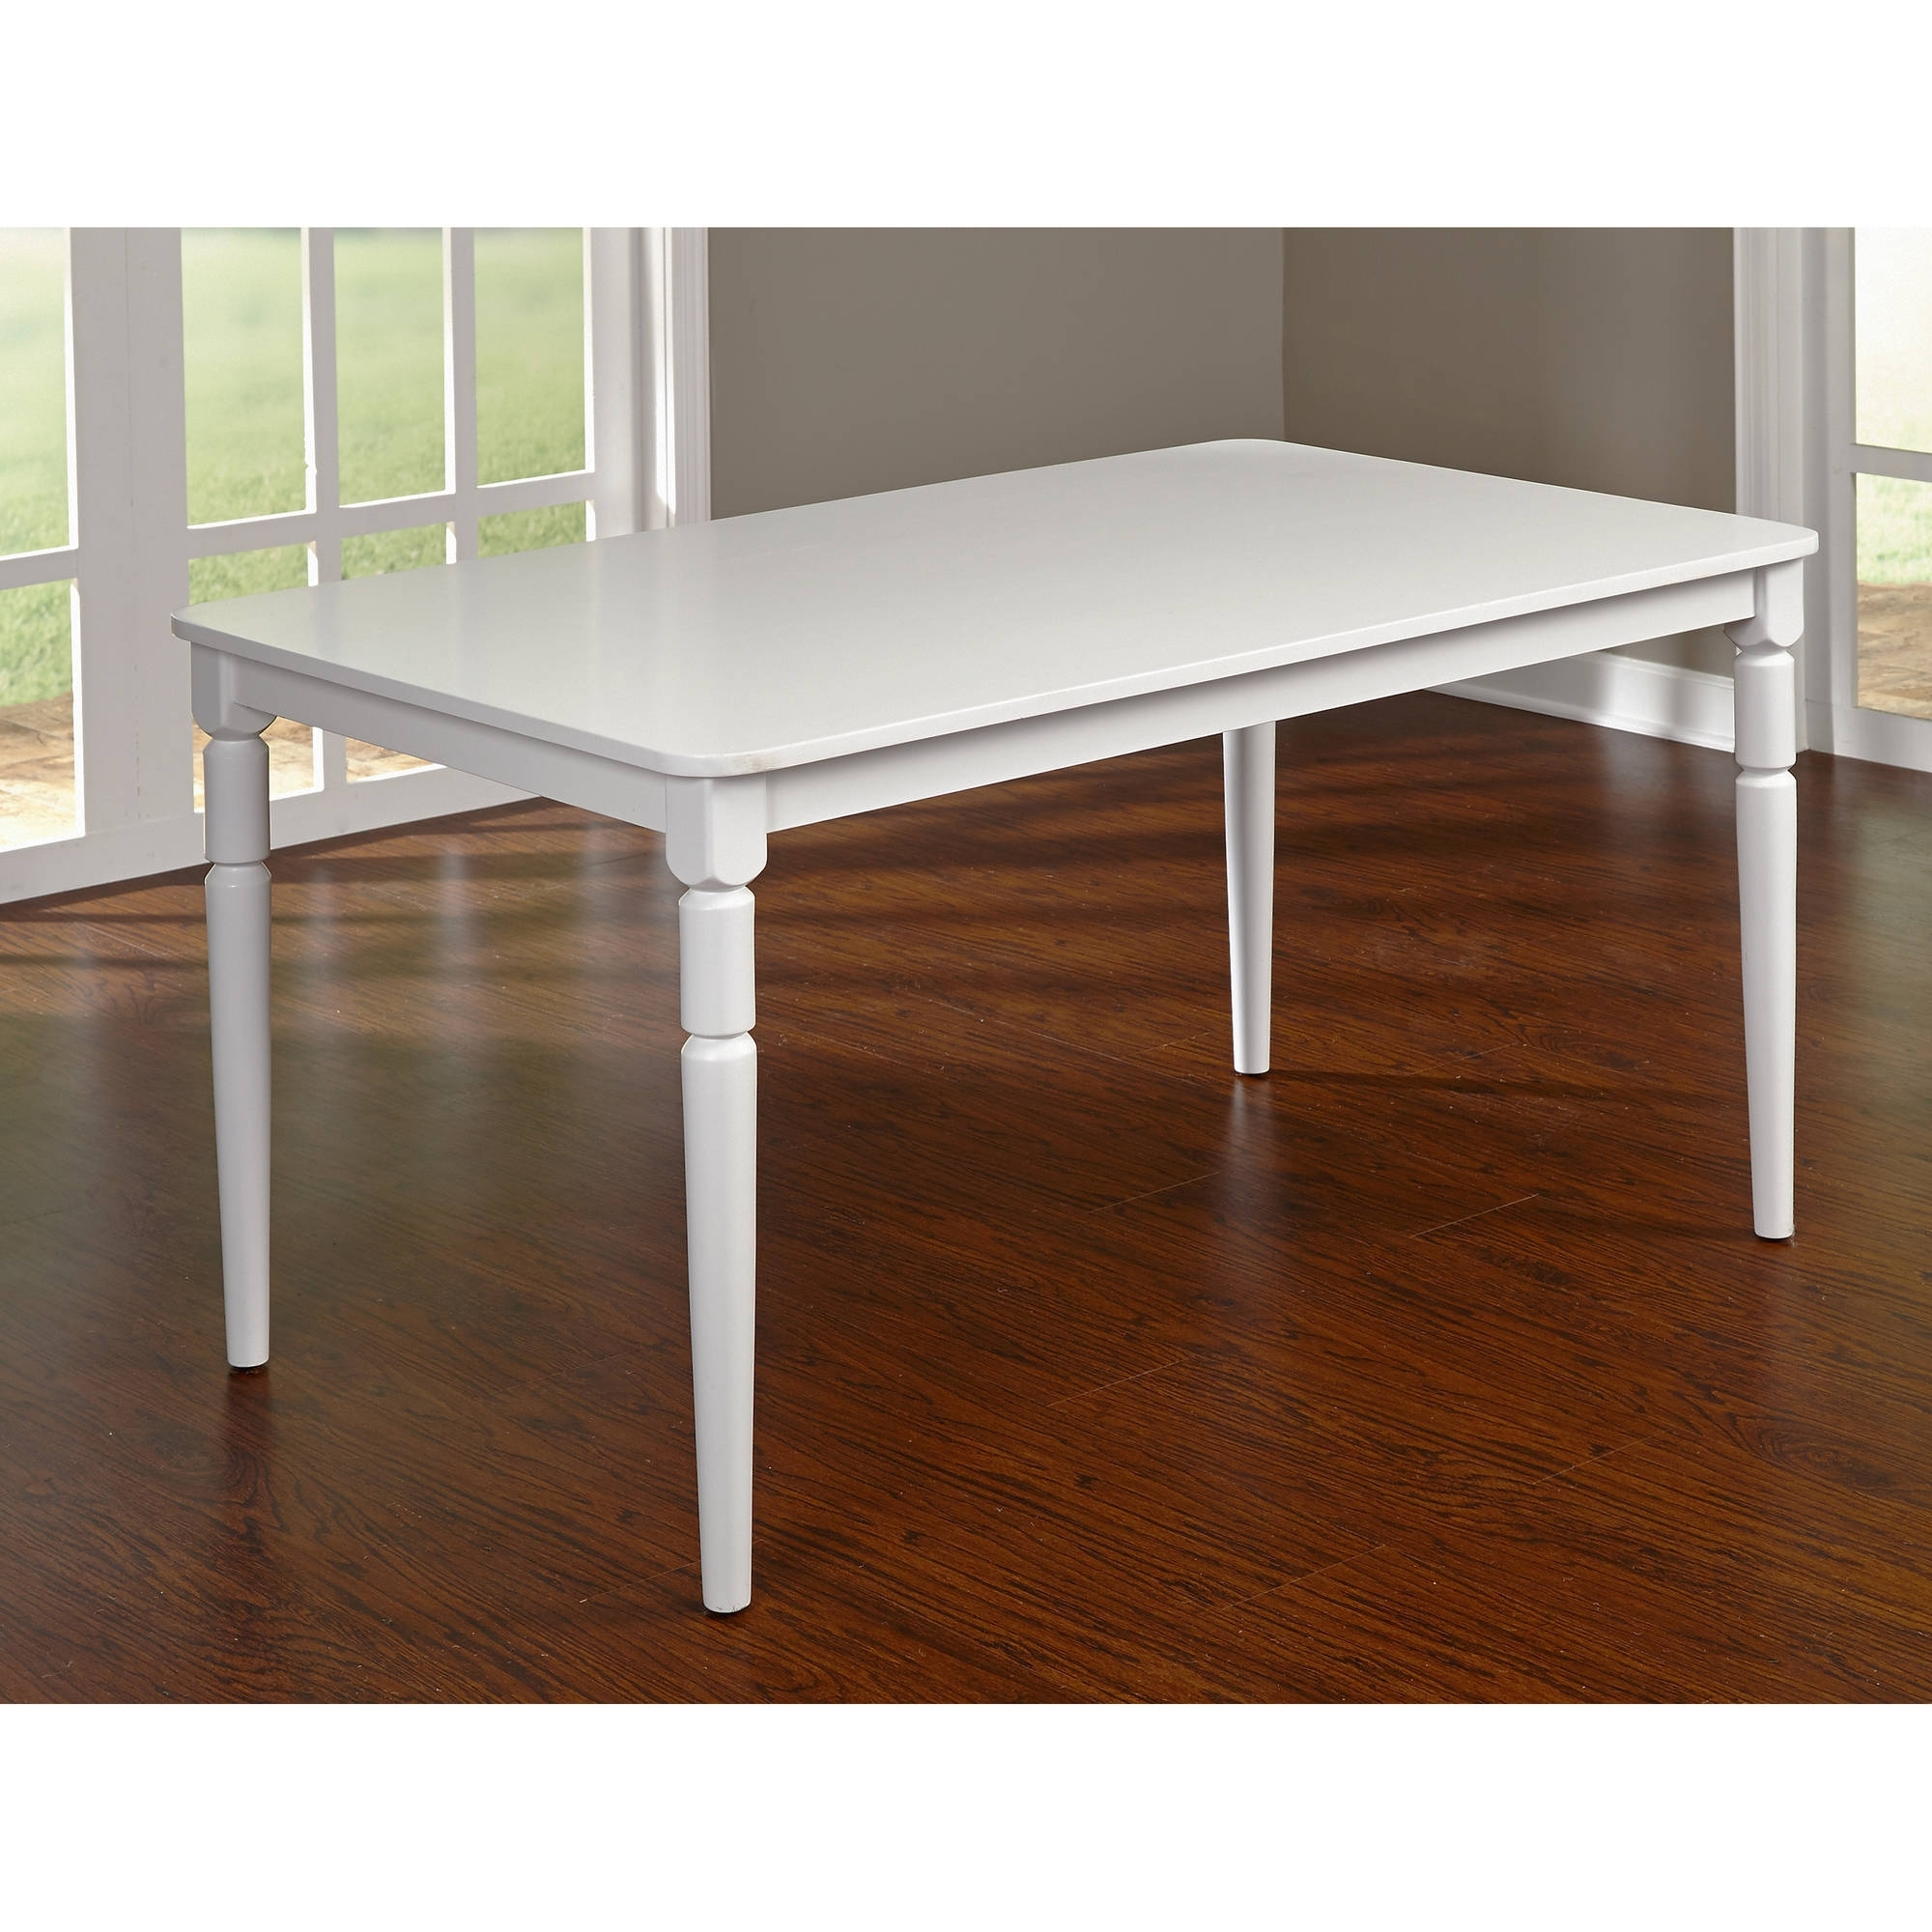 Albury Turned Legs Table, White – Walmart Pertaining To Current Dining Tables With White Legs (View 8 of 25)